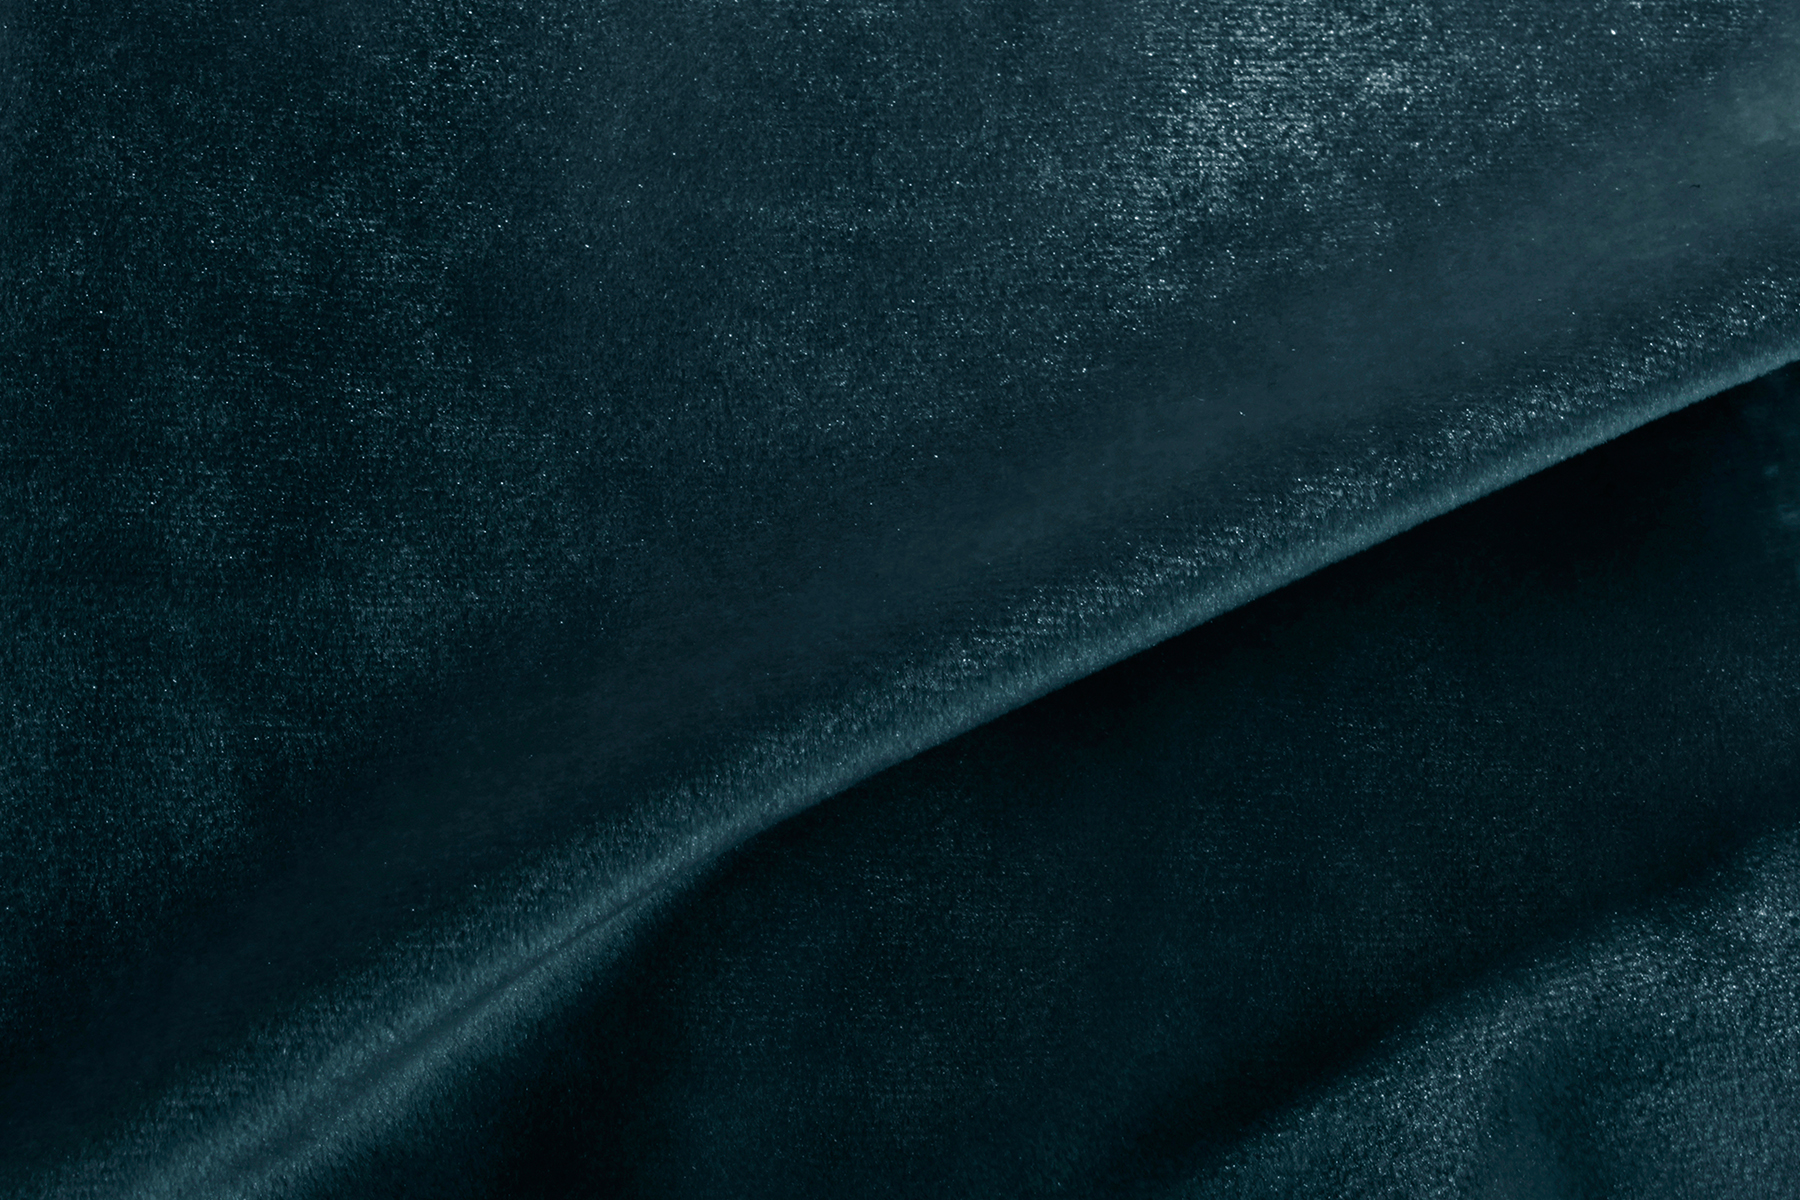 SILKY VELVET 421 Fabric by KOKET